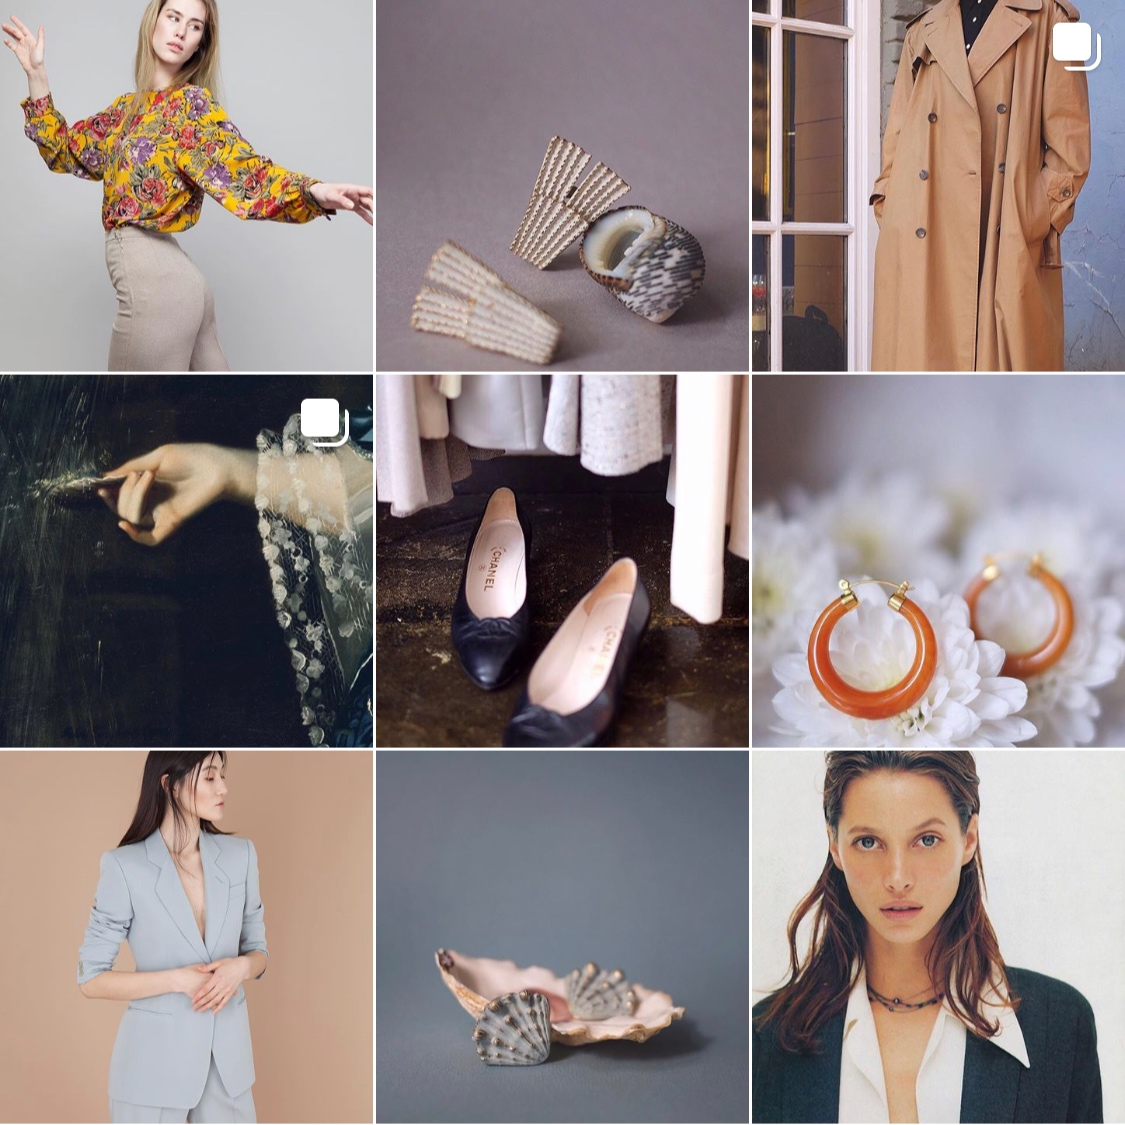 mix & match vintage - 'Showroom of selective clothing for aesthetes and hedonists'Mix & Match Vintage offers modern-looking pieces and accessories. The shop was featured in various Russian magazines: Wonderzine, Blueprint and even Harper's Bazaar. Well, I see why!